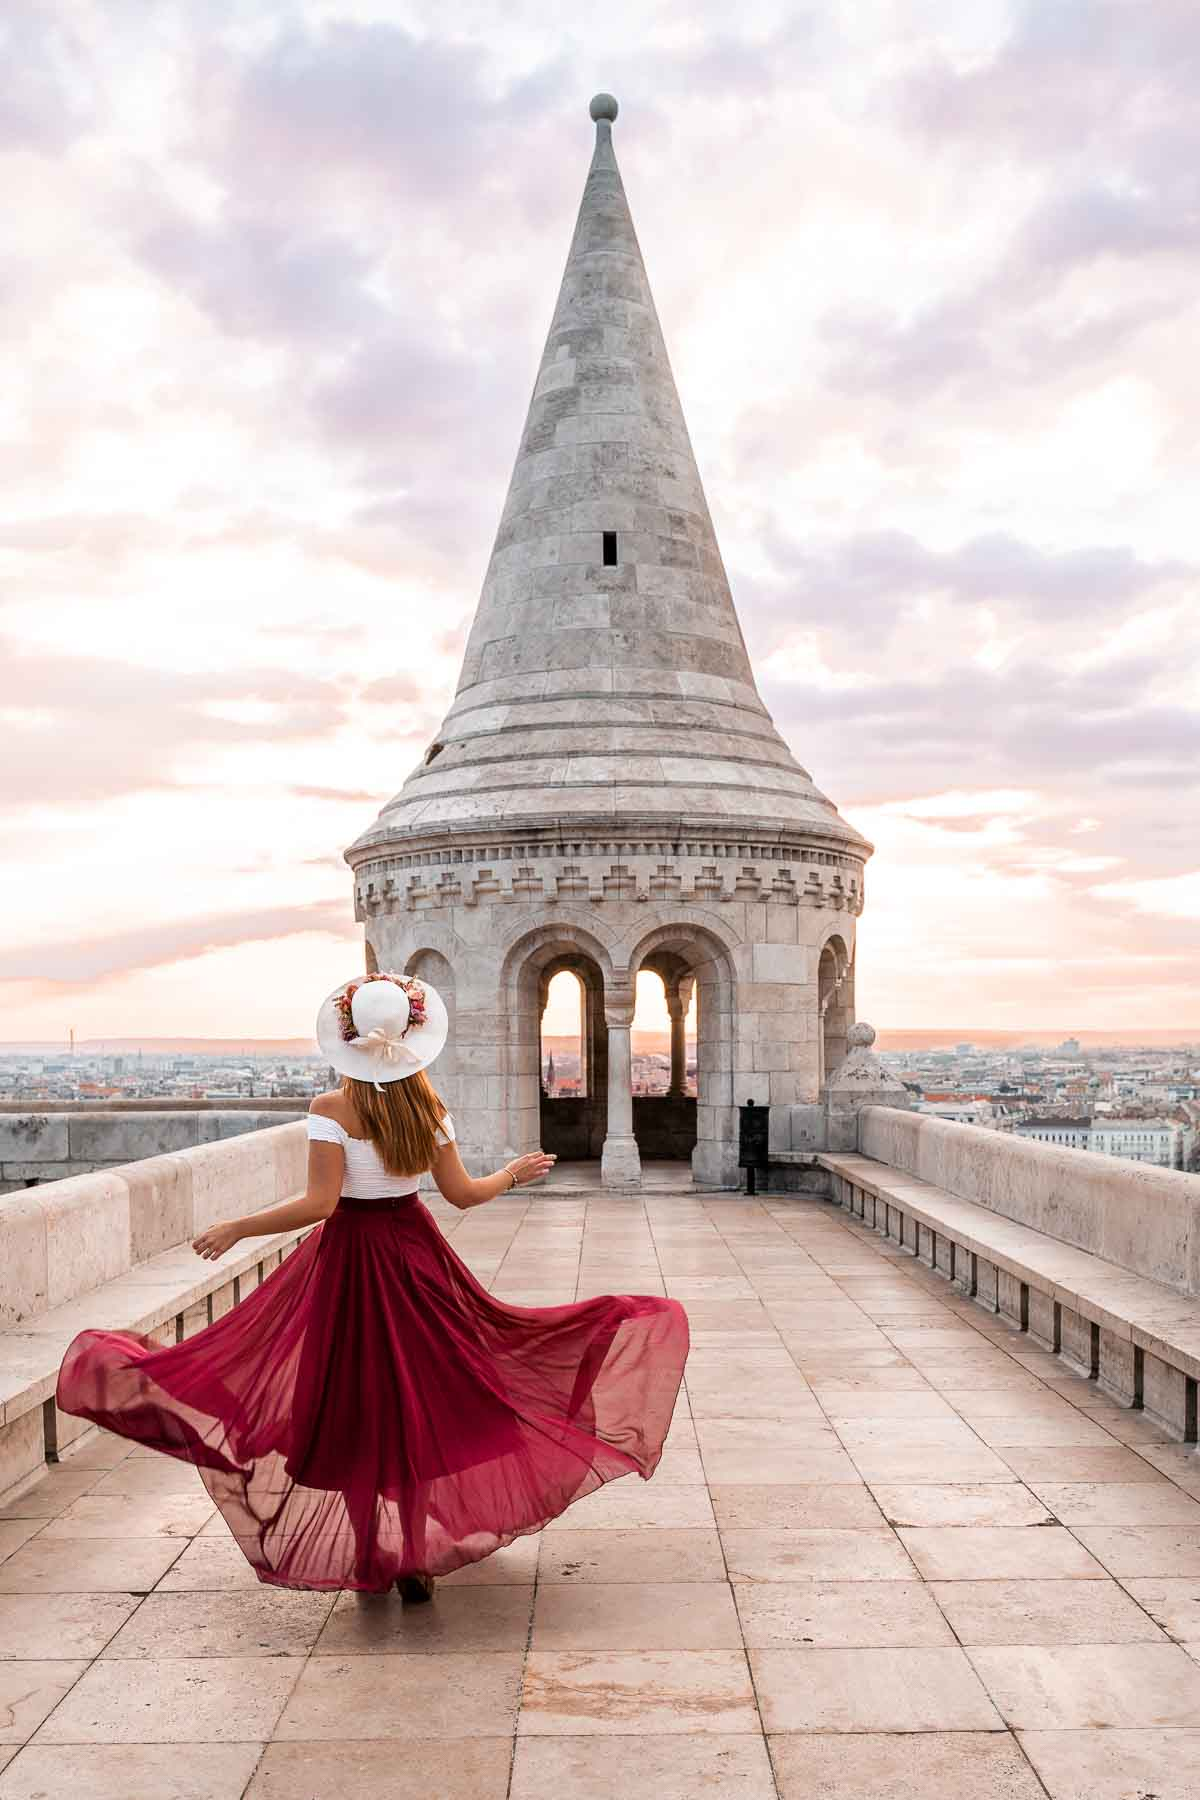 Girl in a red skirt twirling at the upper turrets in Fisherman's Bastion in Budapest